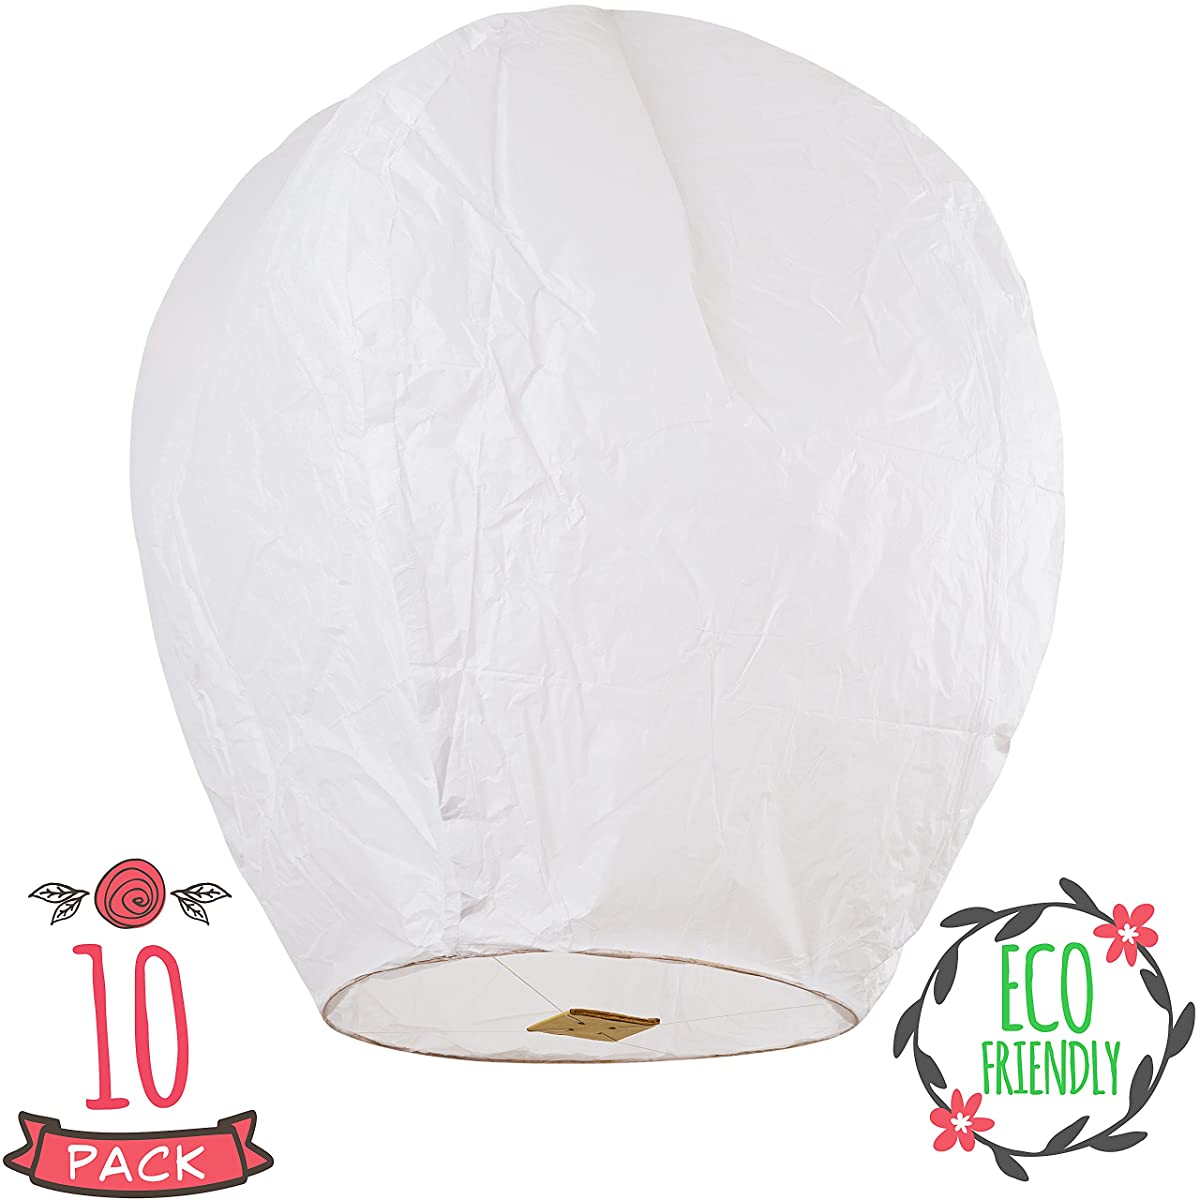 SKY HIGH Coral Entertainments chinese lanterns biodegradable and fully assambeled 10-pack White for weddings, birthdays, memorials and much more